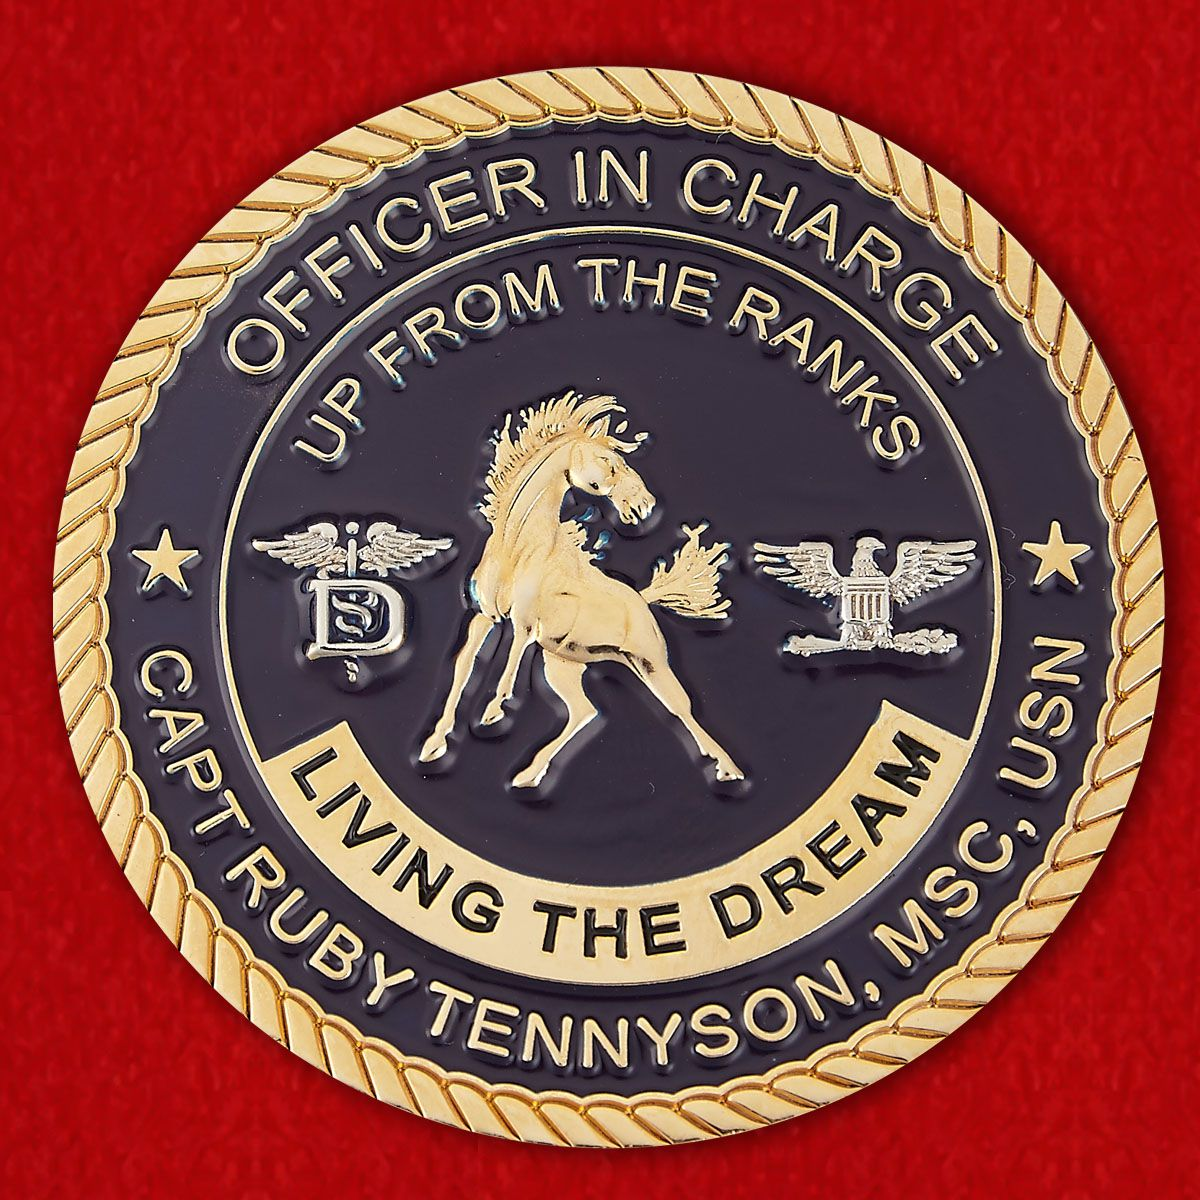 Officer in charge Сapt Rubi Tennison, MCS, USN by U.S. Naval Branch Health Clinic NSA Bahrain Challenge Coin